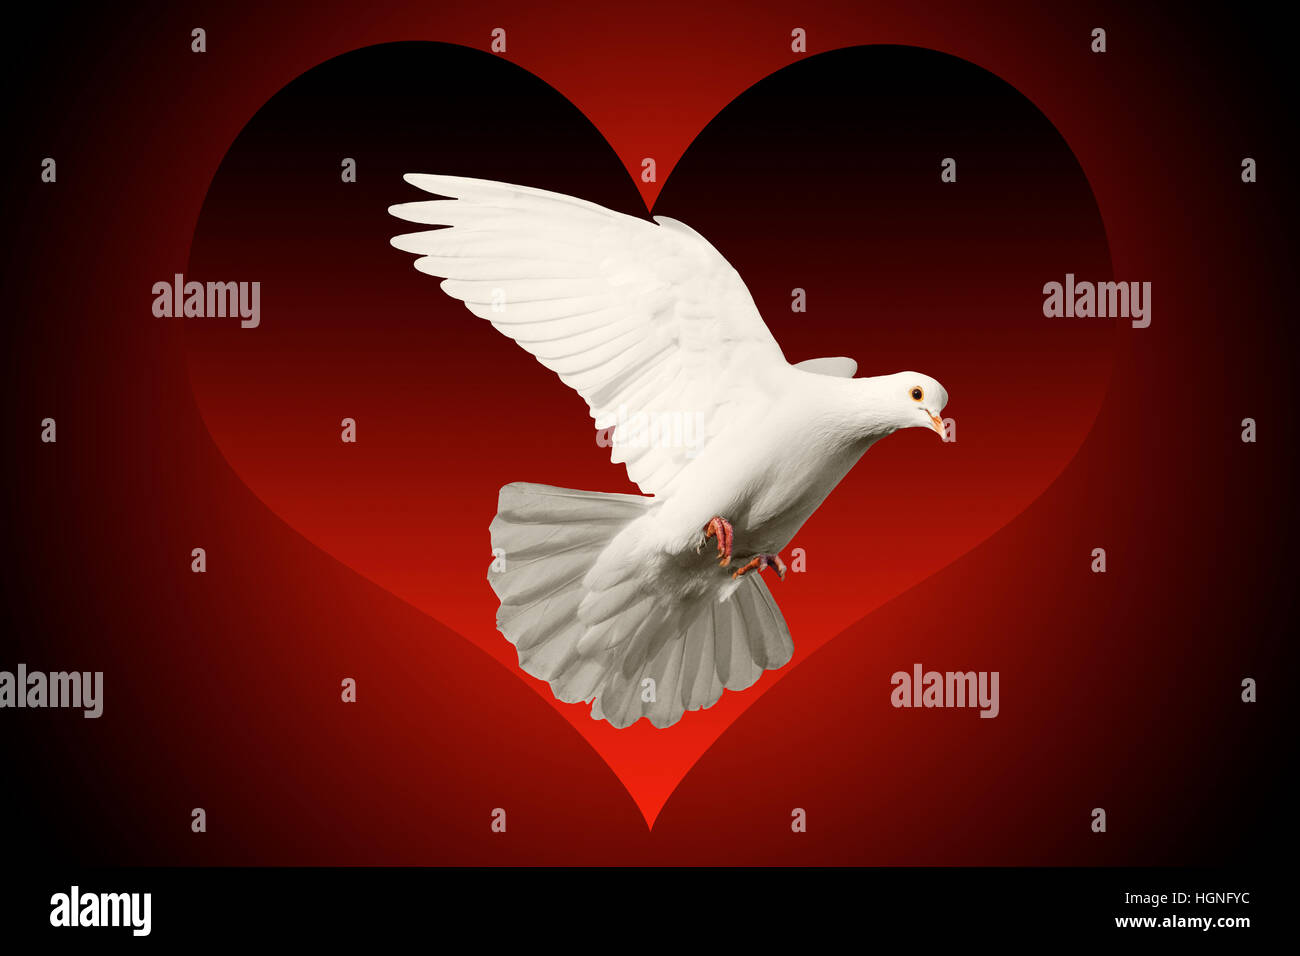 White Dove Flying Symbol Of Love Isolated On Red And Black Heart